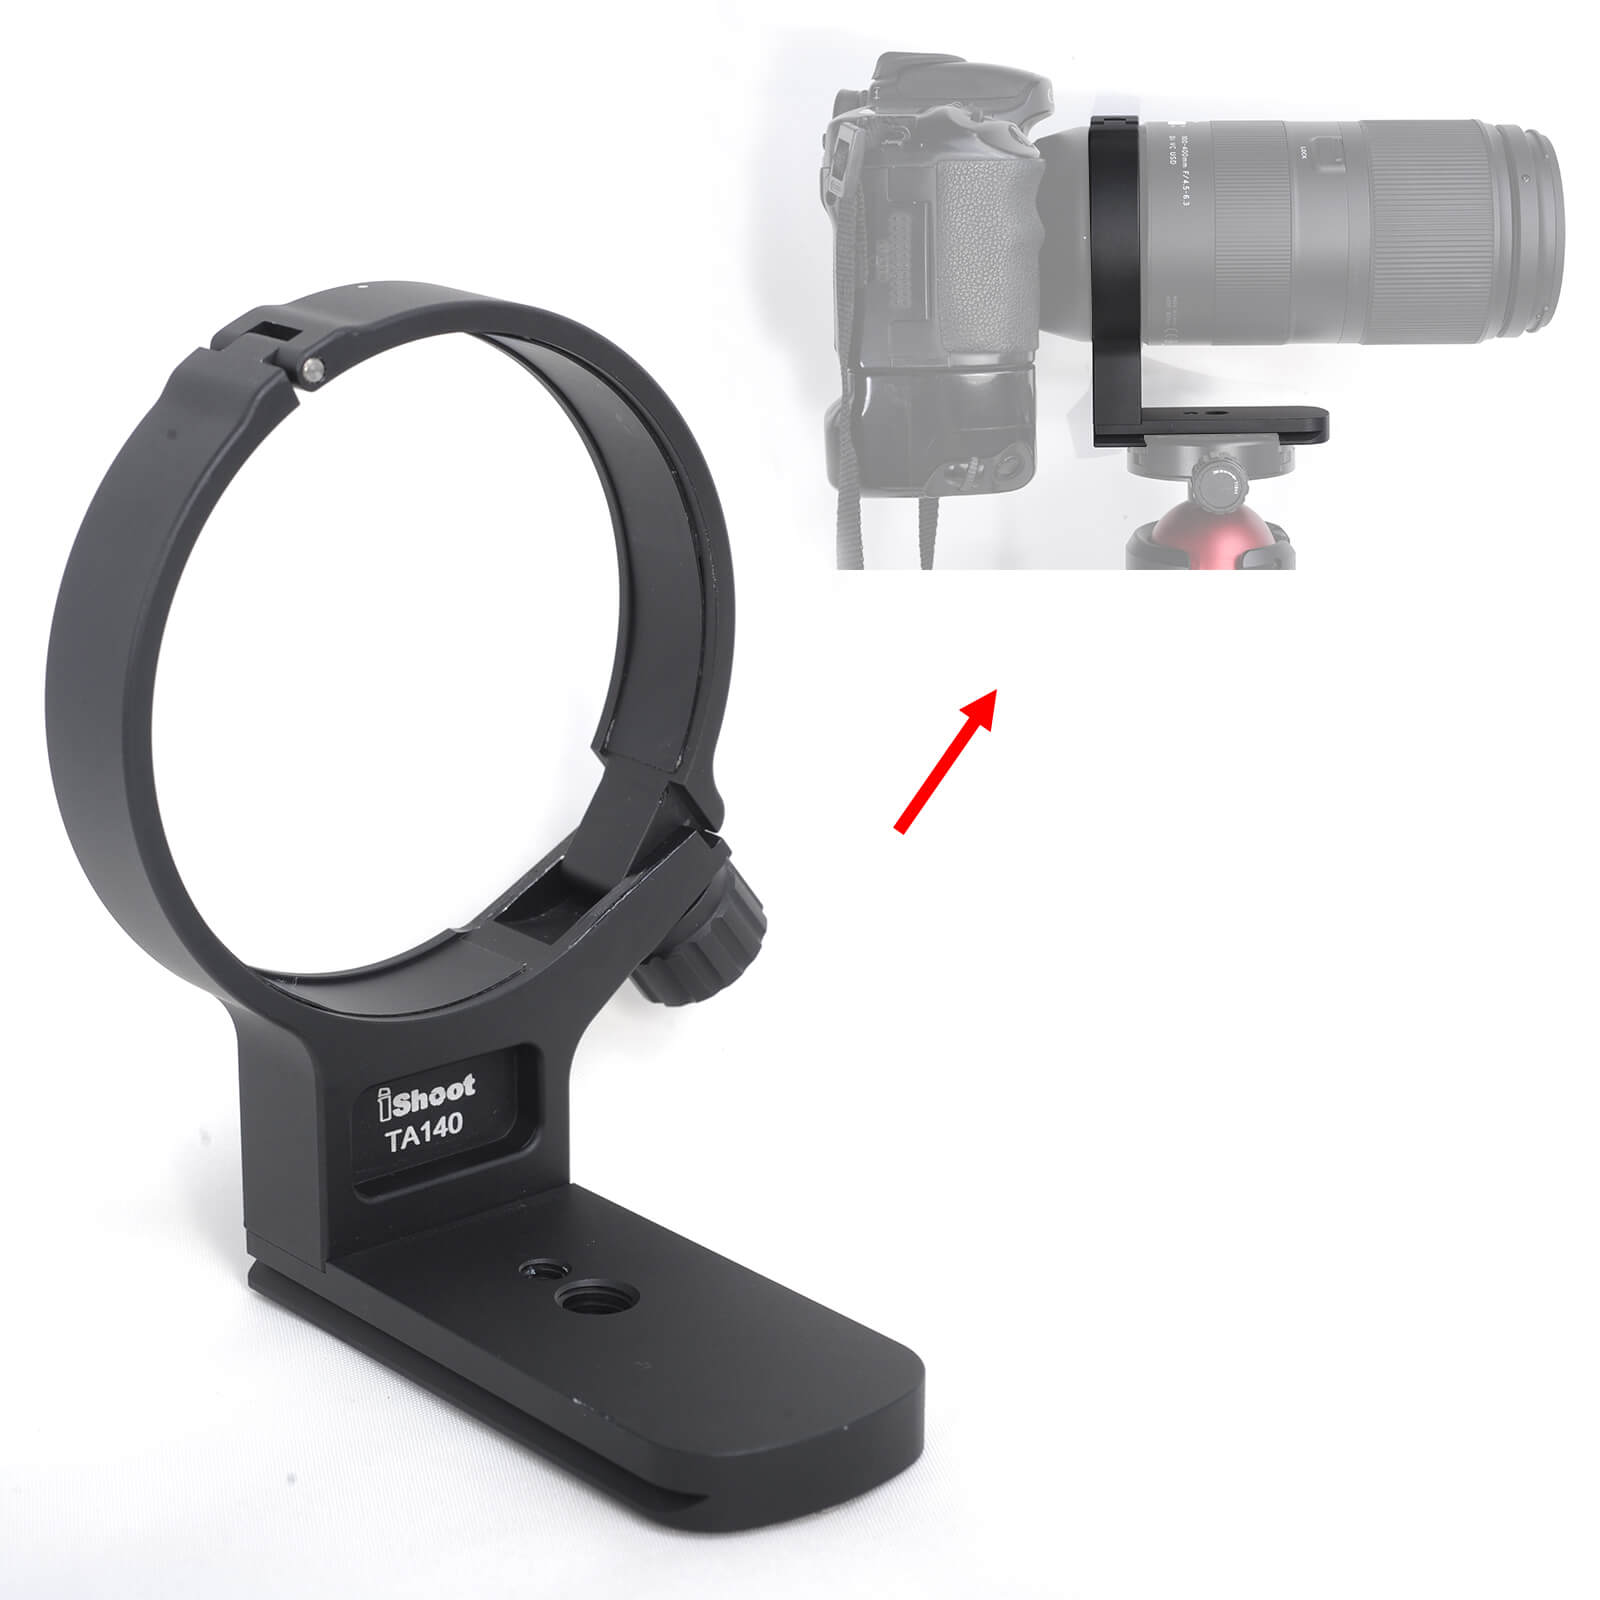 Lens Collar Support Tripod Mount Ring for Tamron 100 400mm f/4.5 6.3 Di VC USD (A035) Bottom is ARCA Fit Quick Release Plate